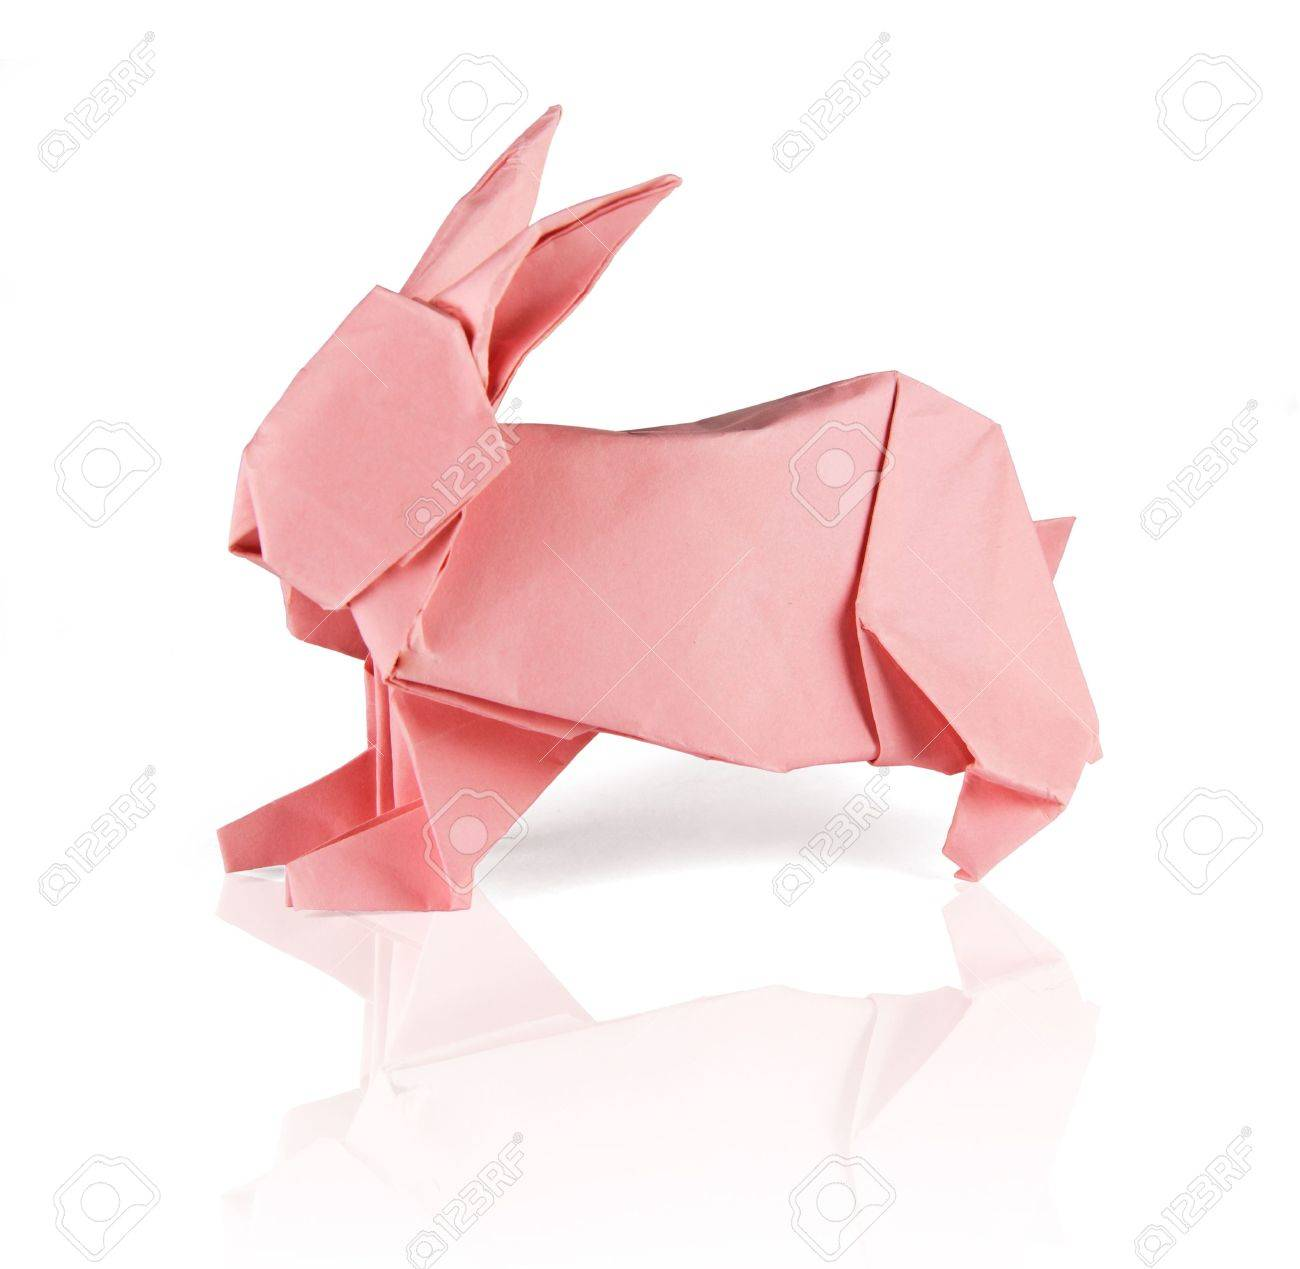 Pink Origami Rabbit On The White Reflecting Background Stock Photo